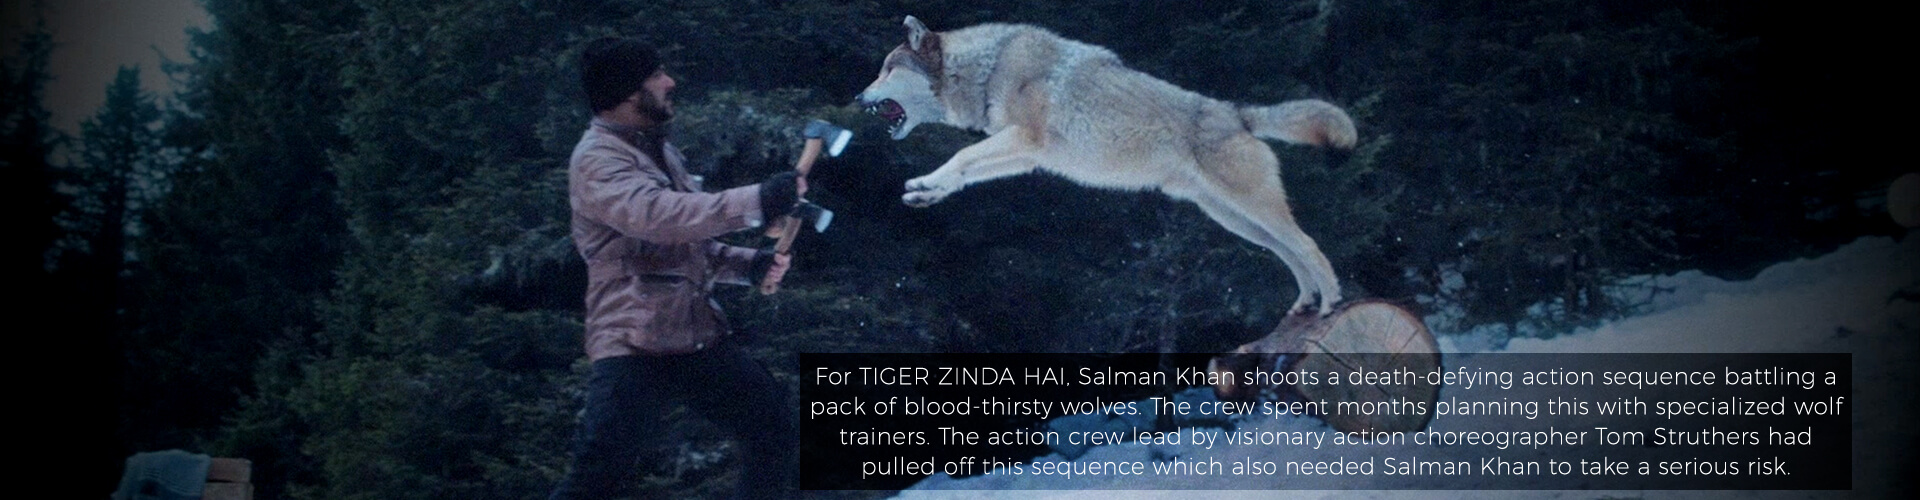 Salman Khan shoots a death-defying action sequence battling a pack of blood-thirsty wolves